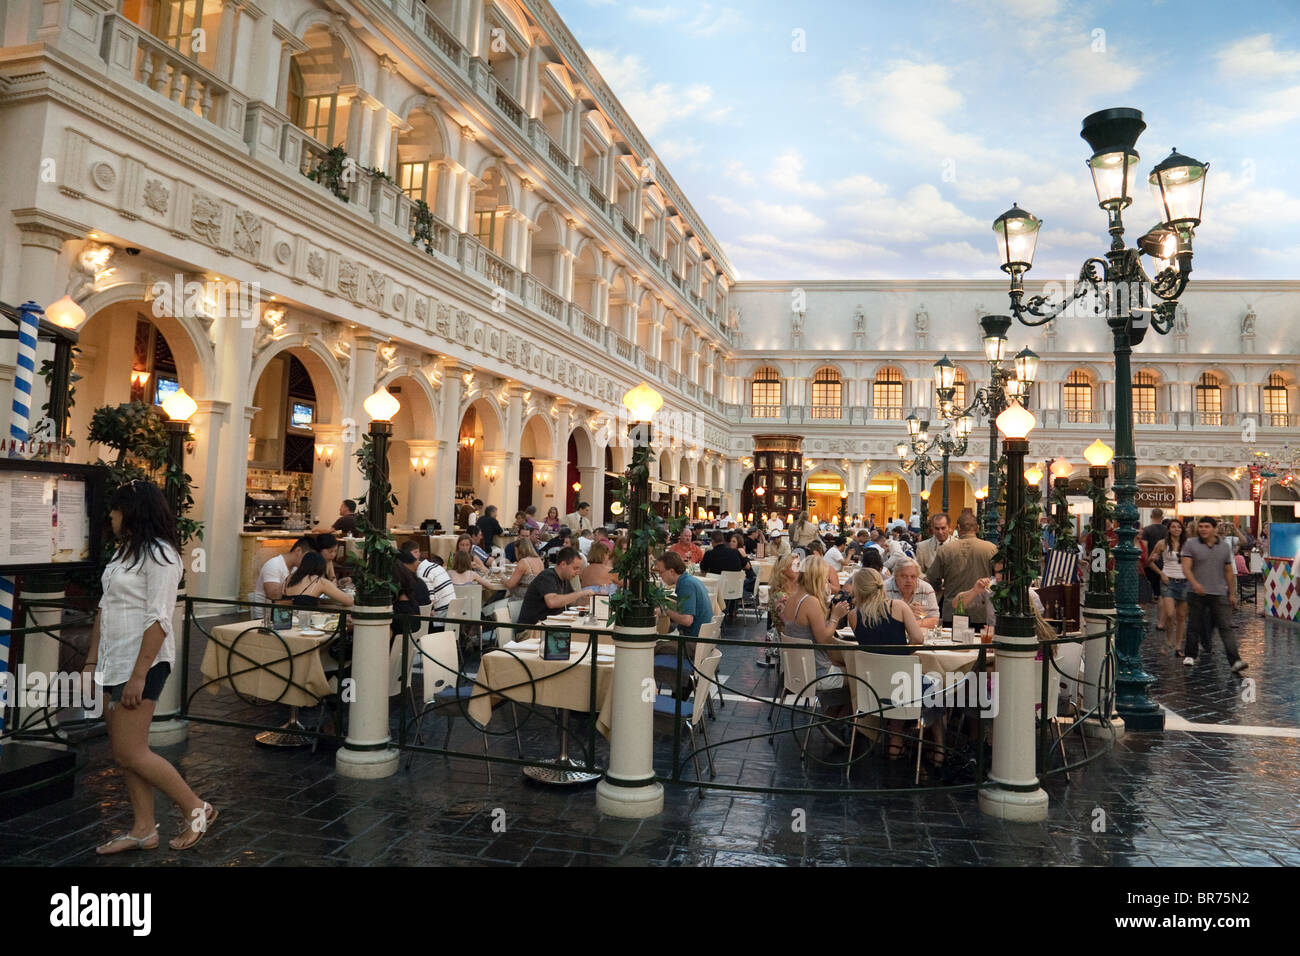 People Eating At A Restaurant St Marks Square In The